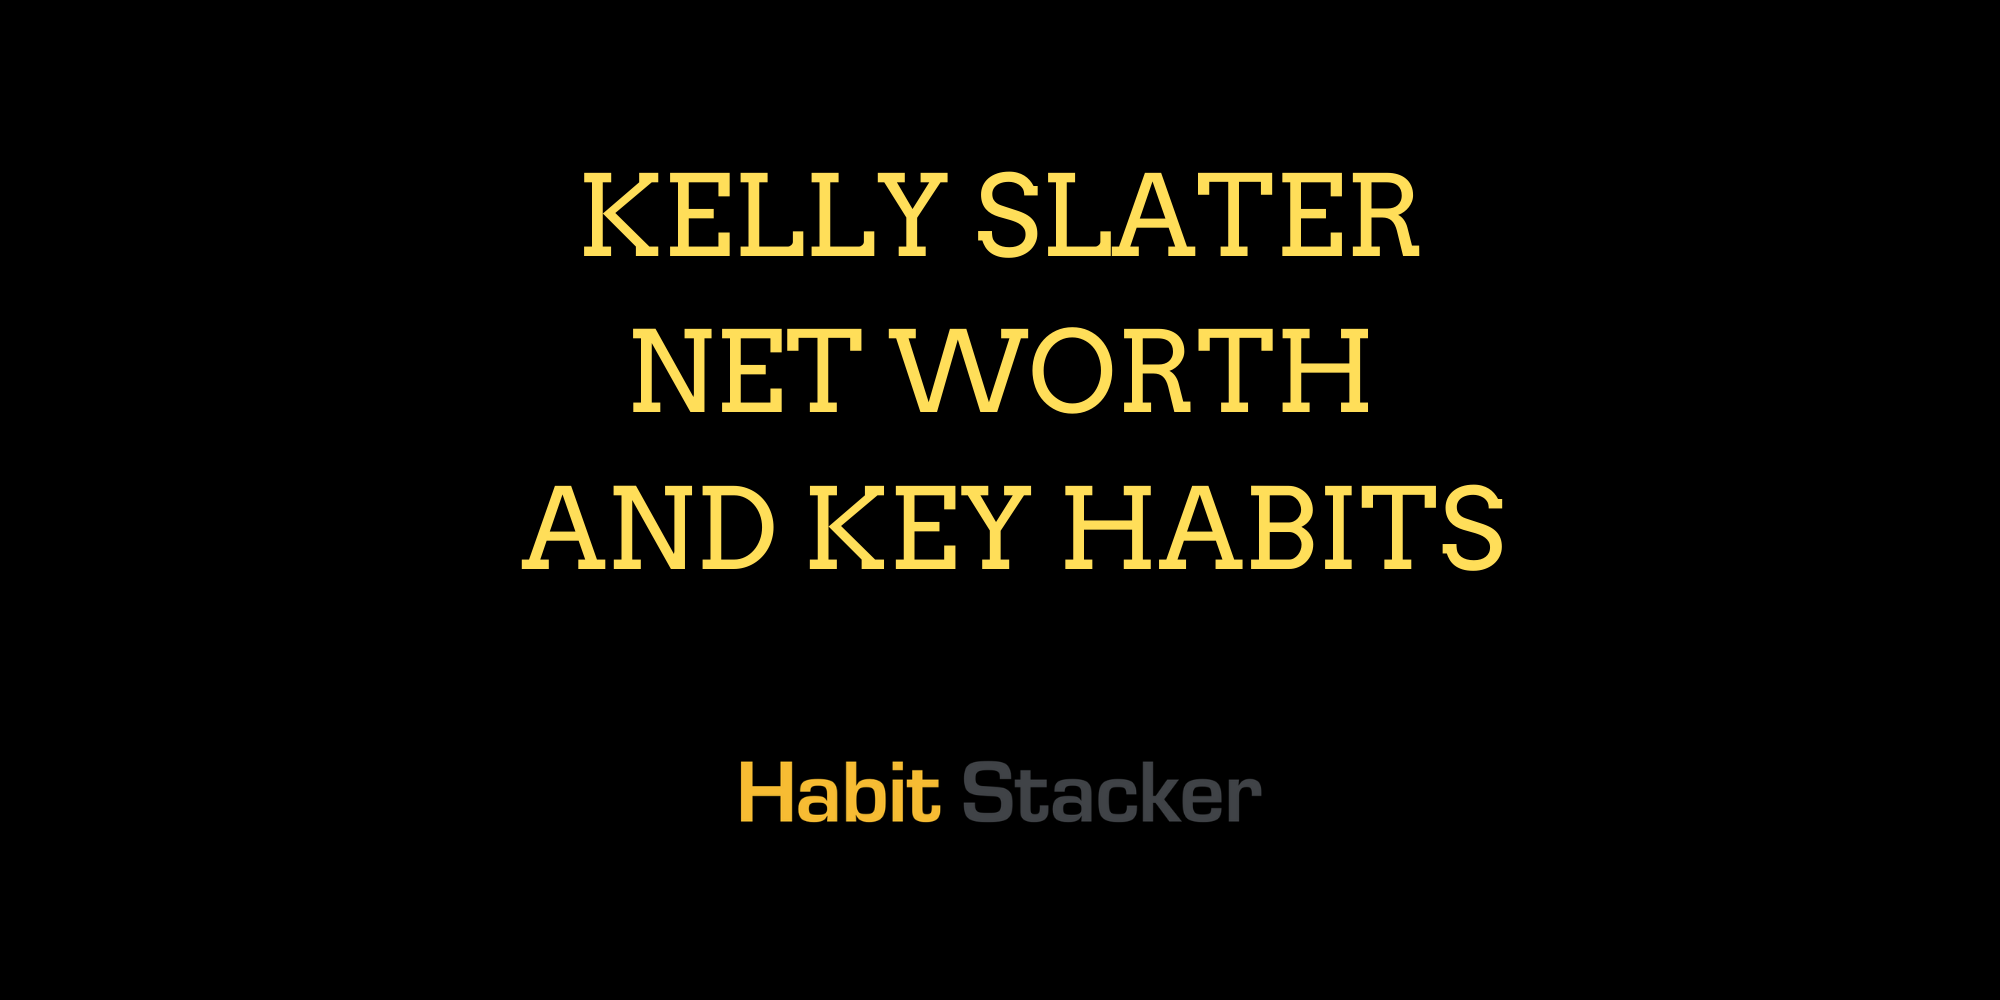 Kelly Slater Net Worth and Key Habits